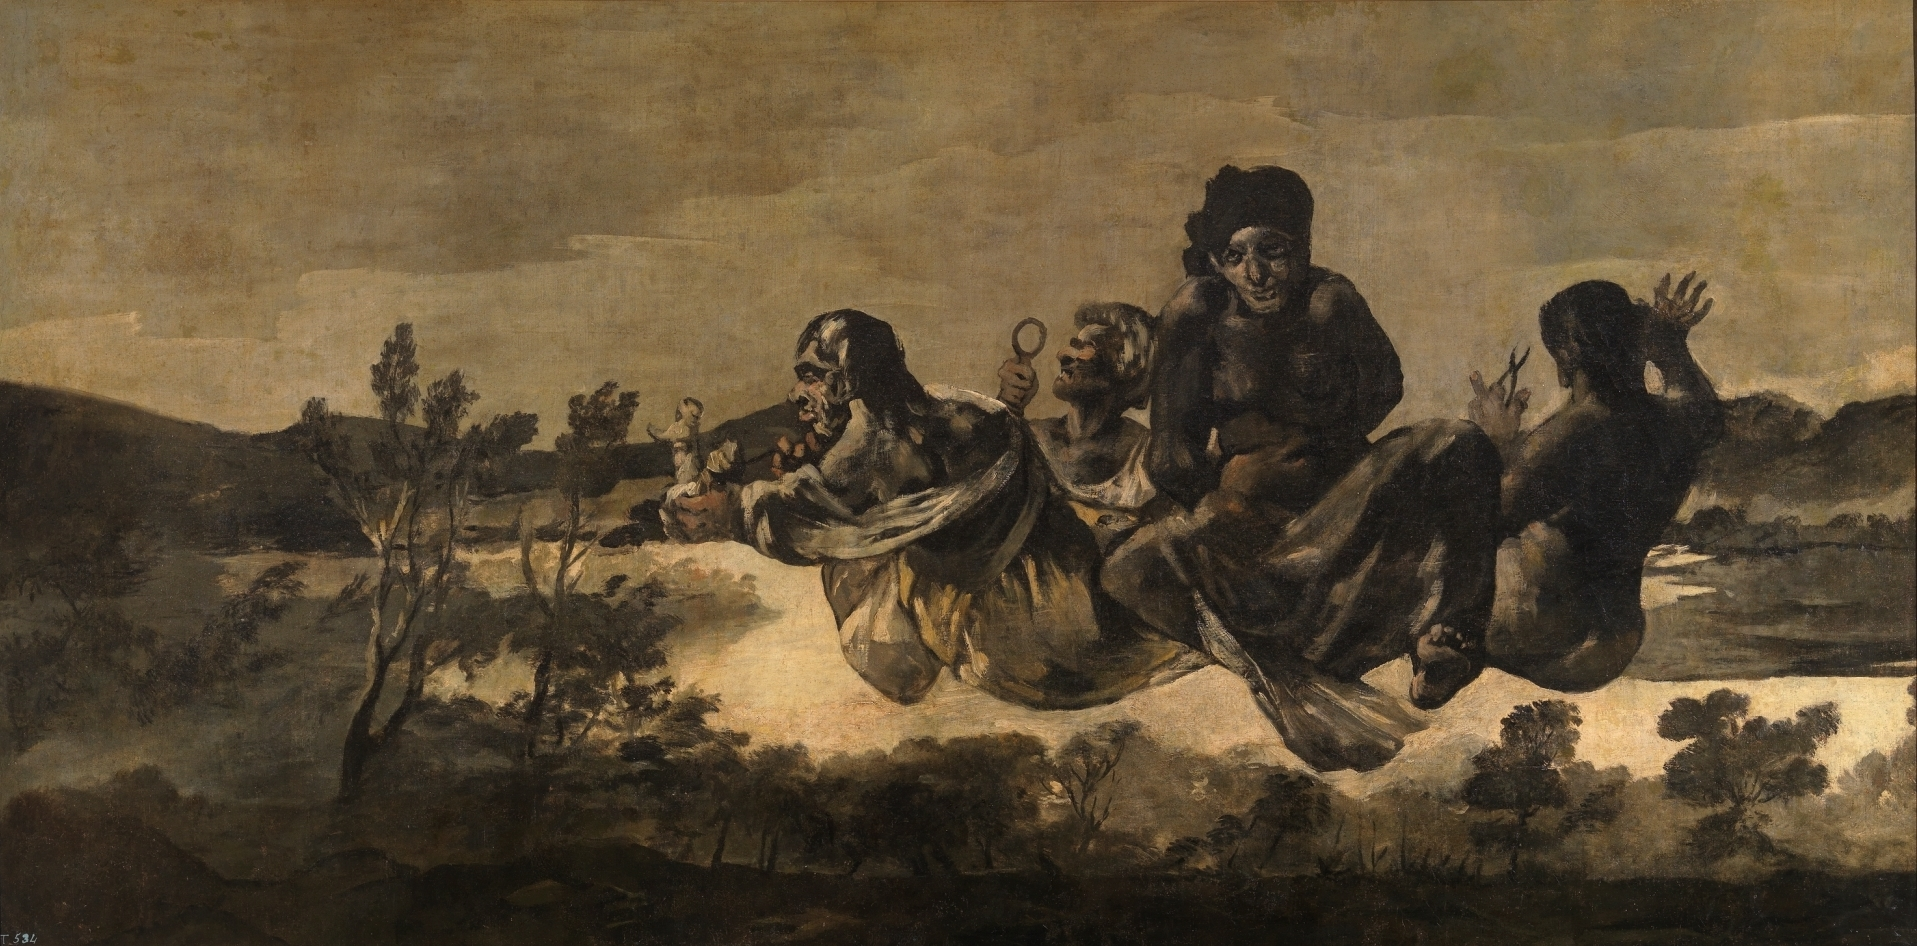 Goya. Atropos ou As Parcas. 1820-1823